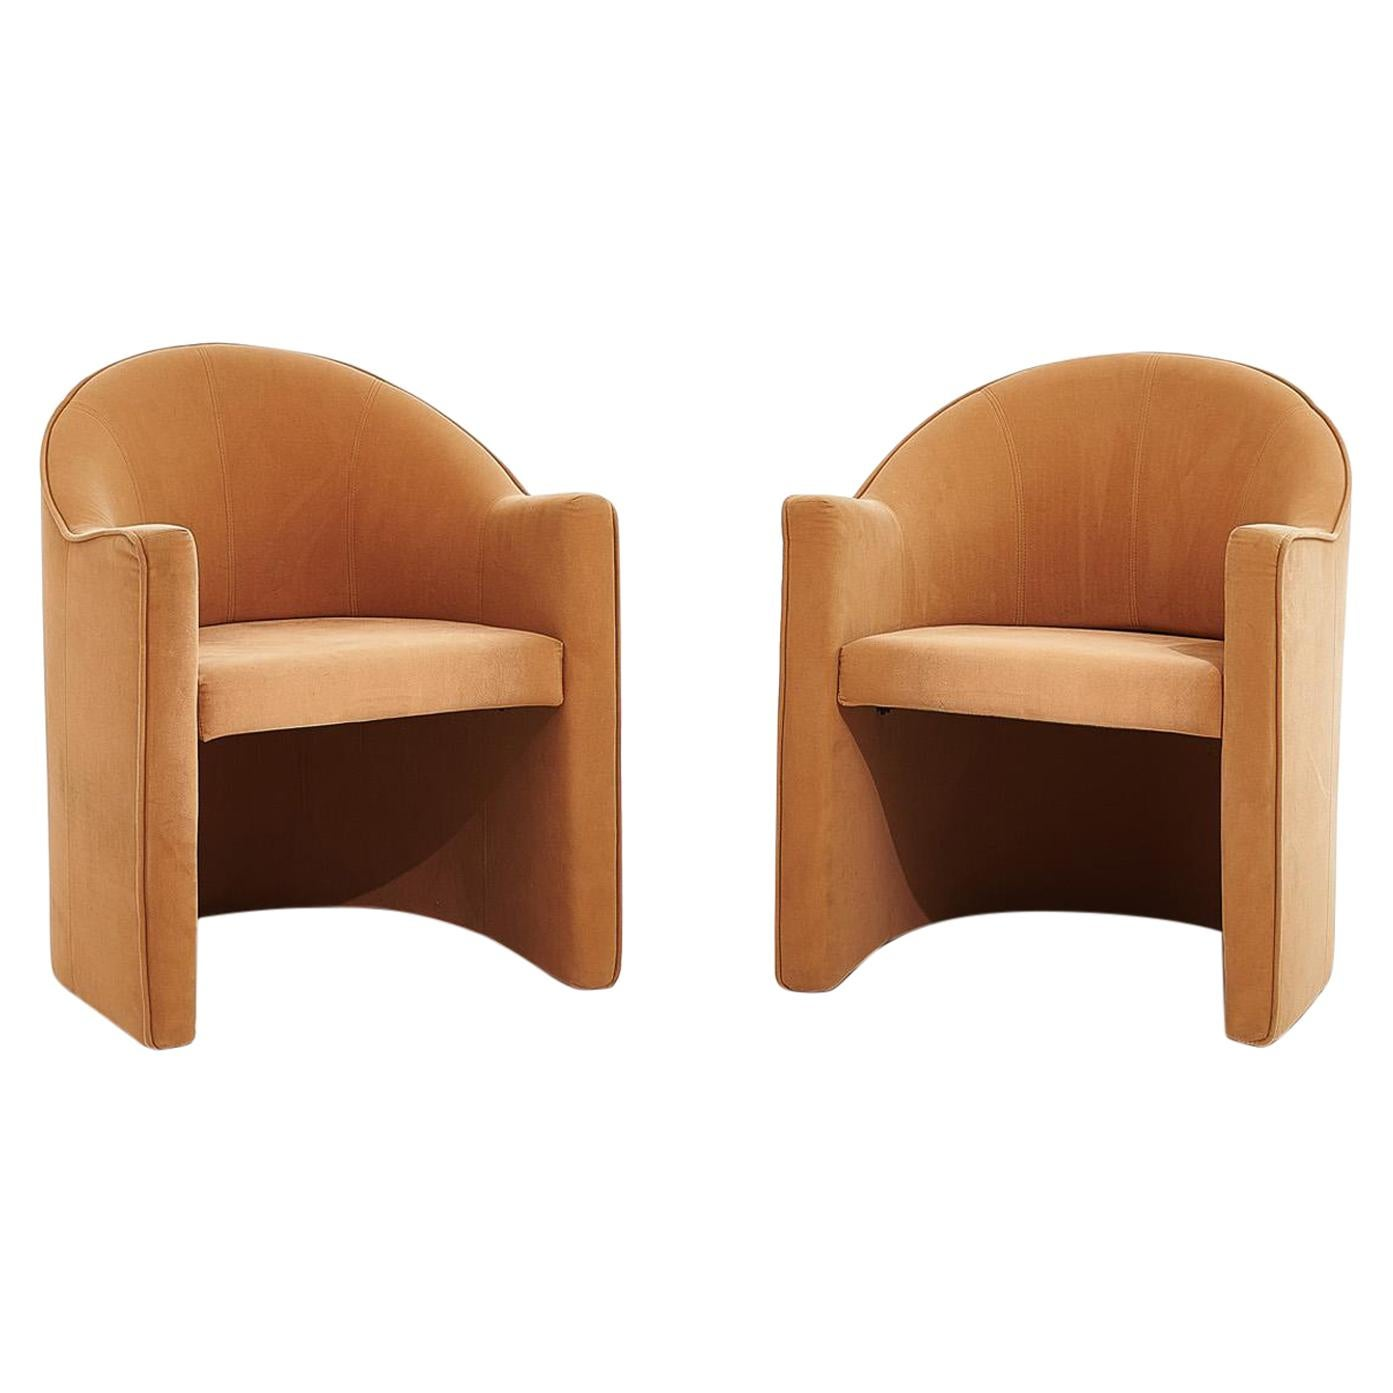 Pace Barrel Back Lounge Chairs by Mariani, Italy, 1980